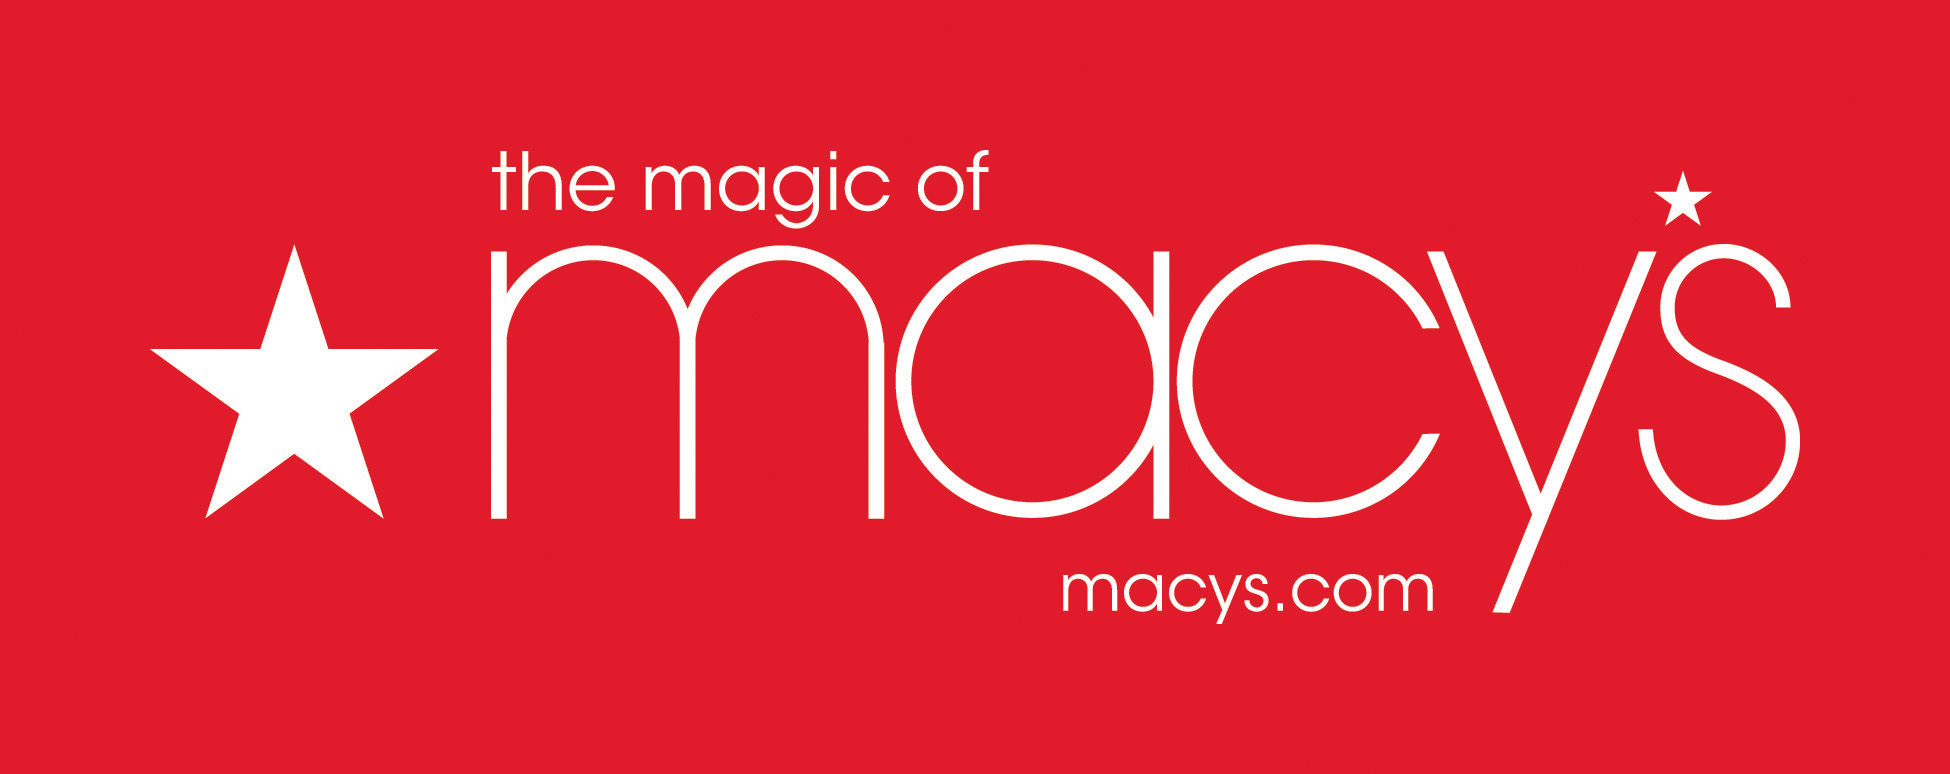 Image result for macys logo